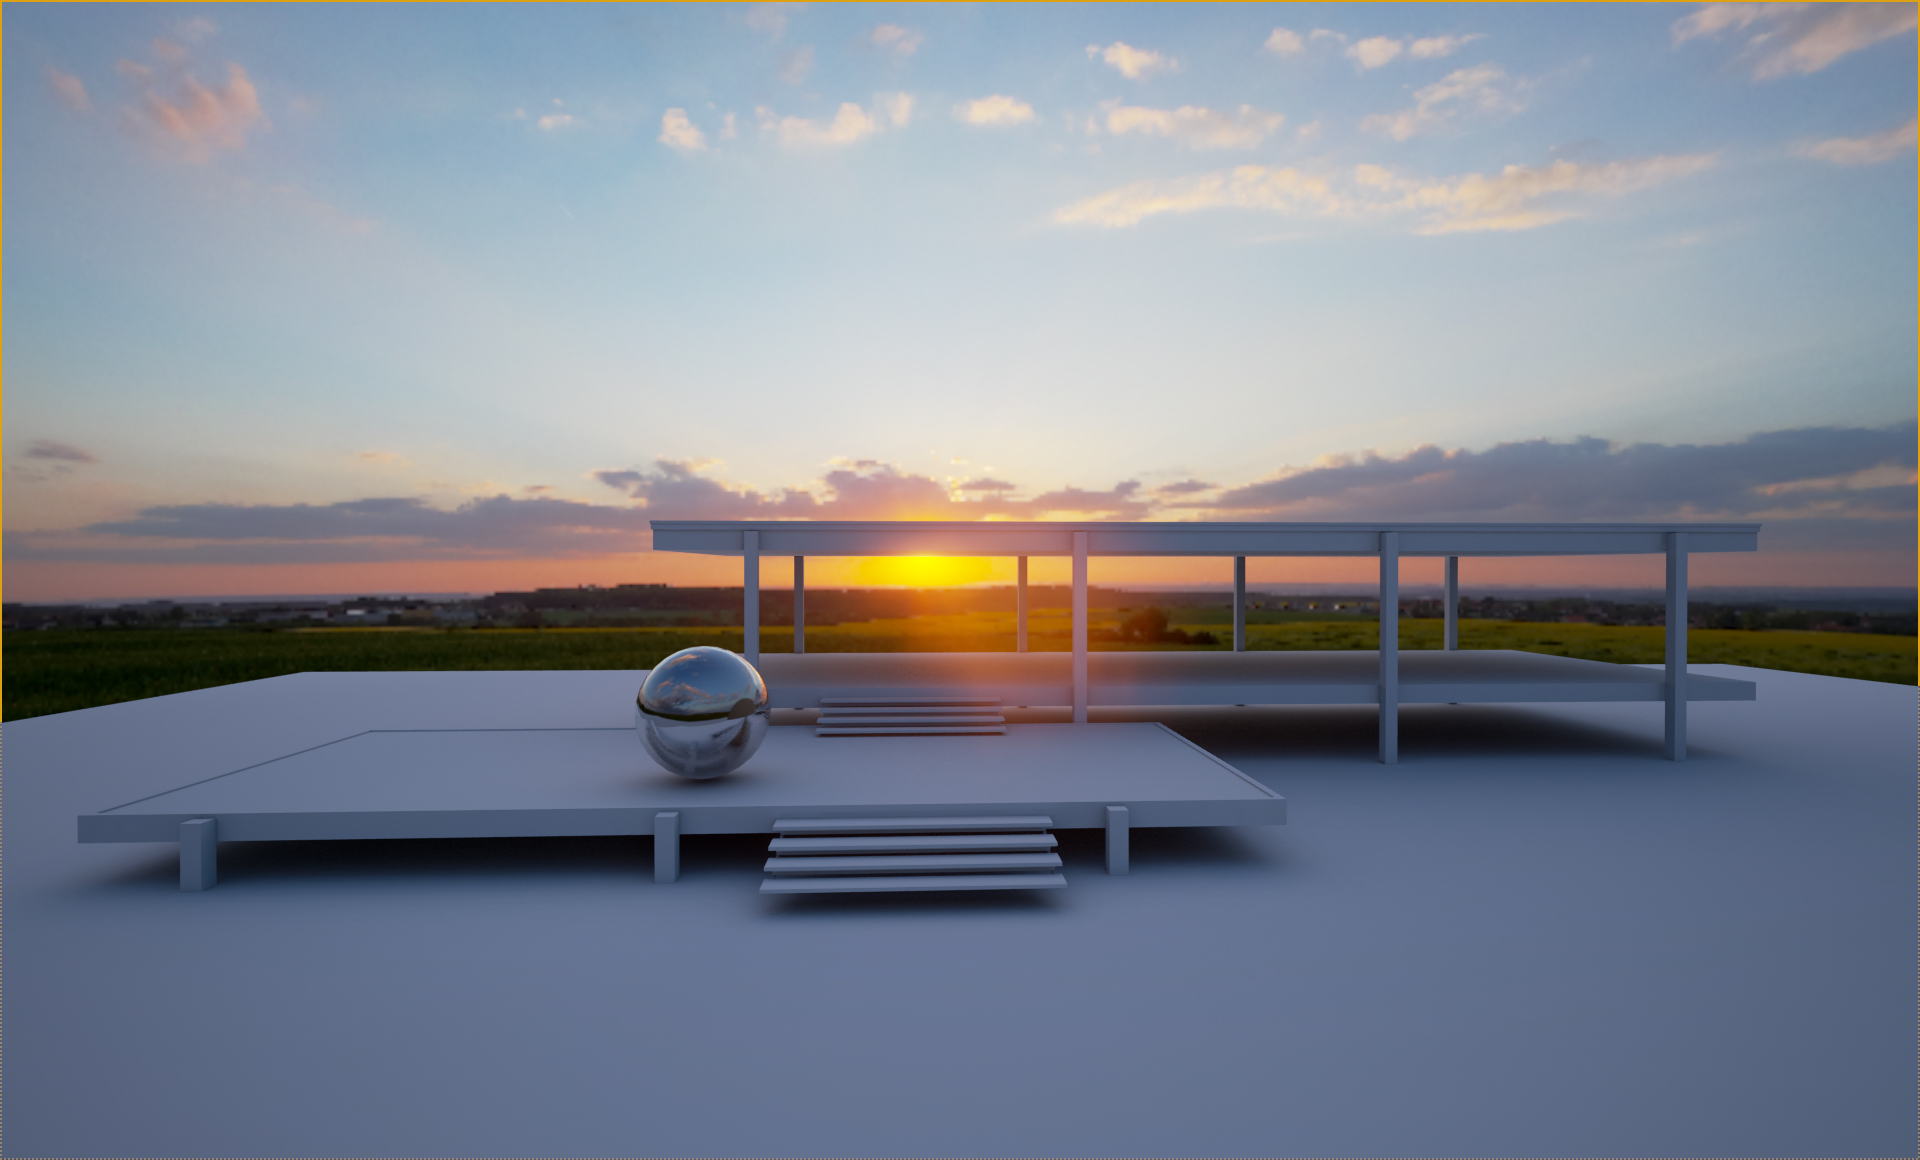 HDRI Lighting in Unreal Engine – Real Time 3D Architecture